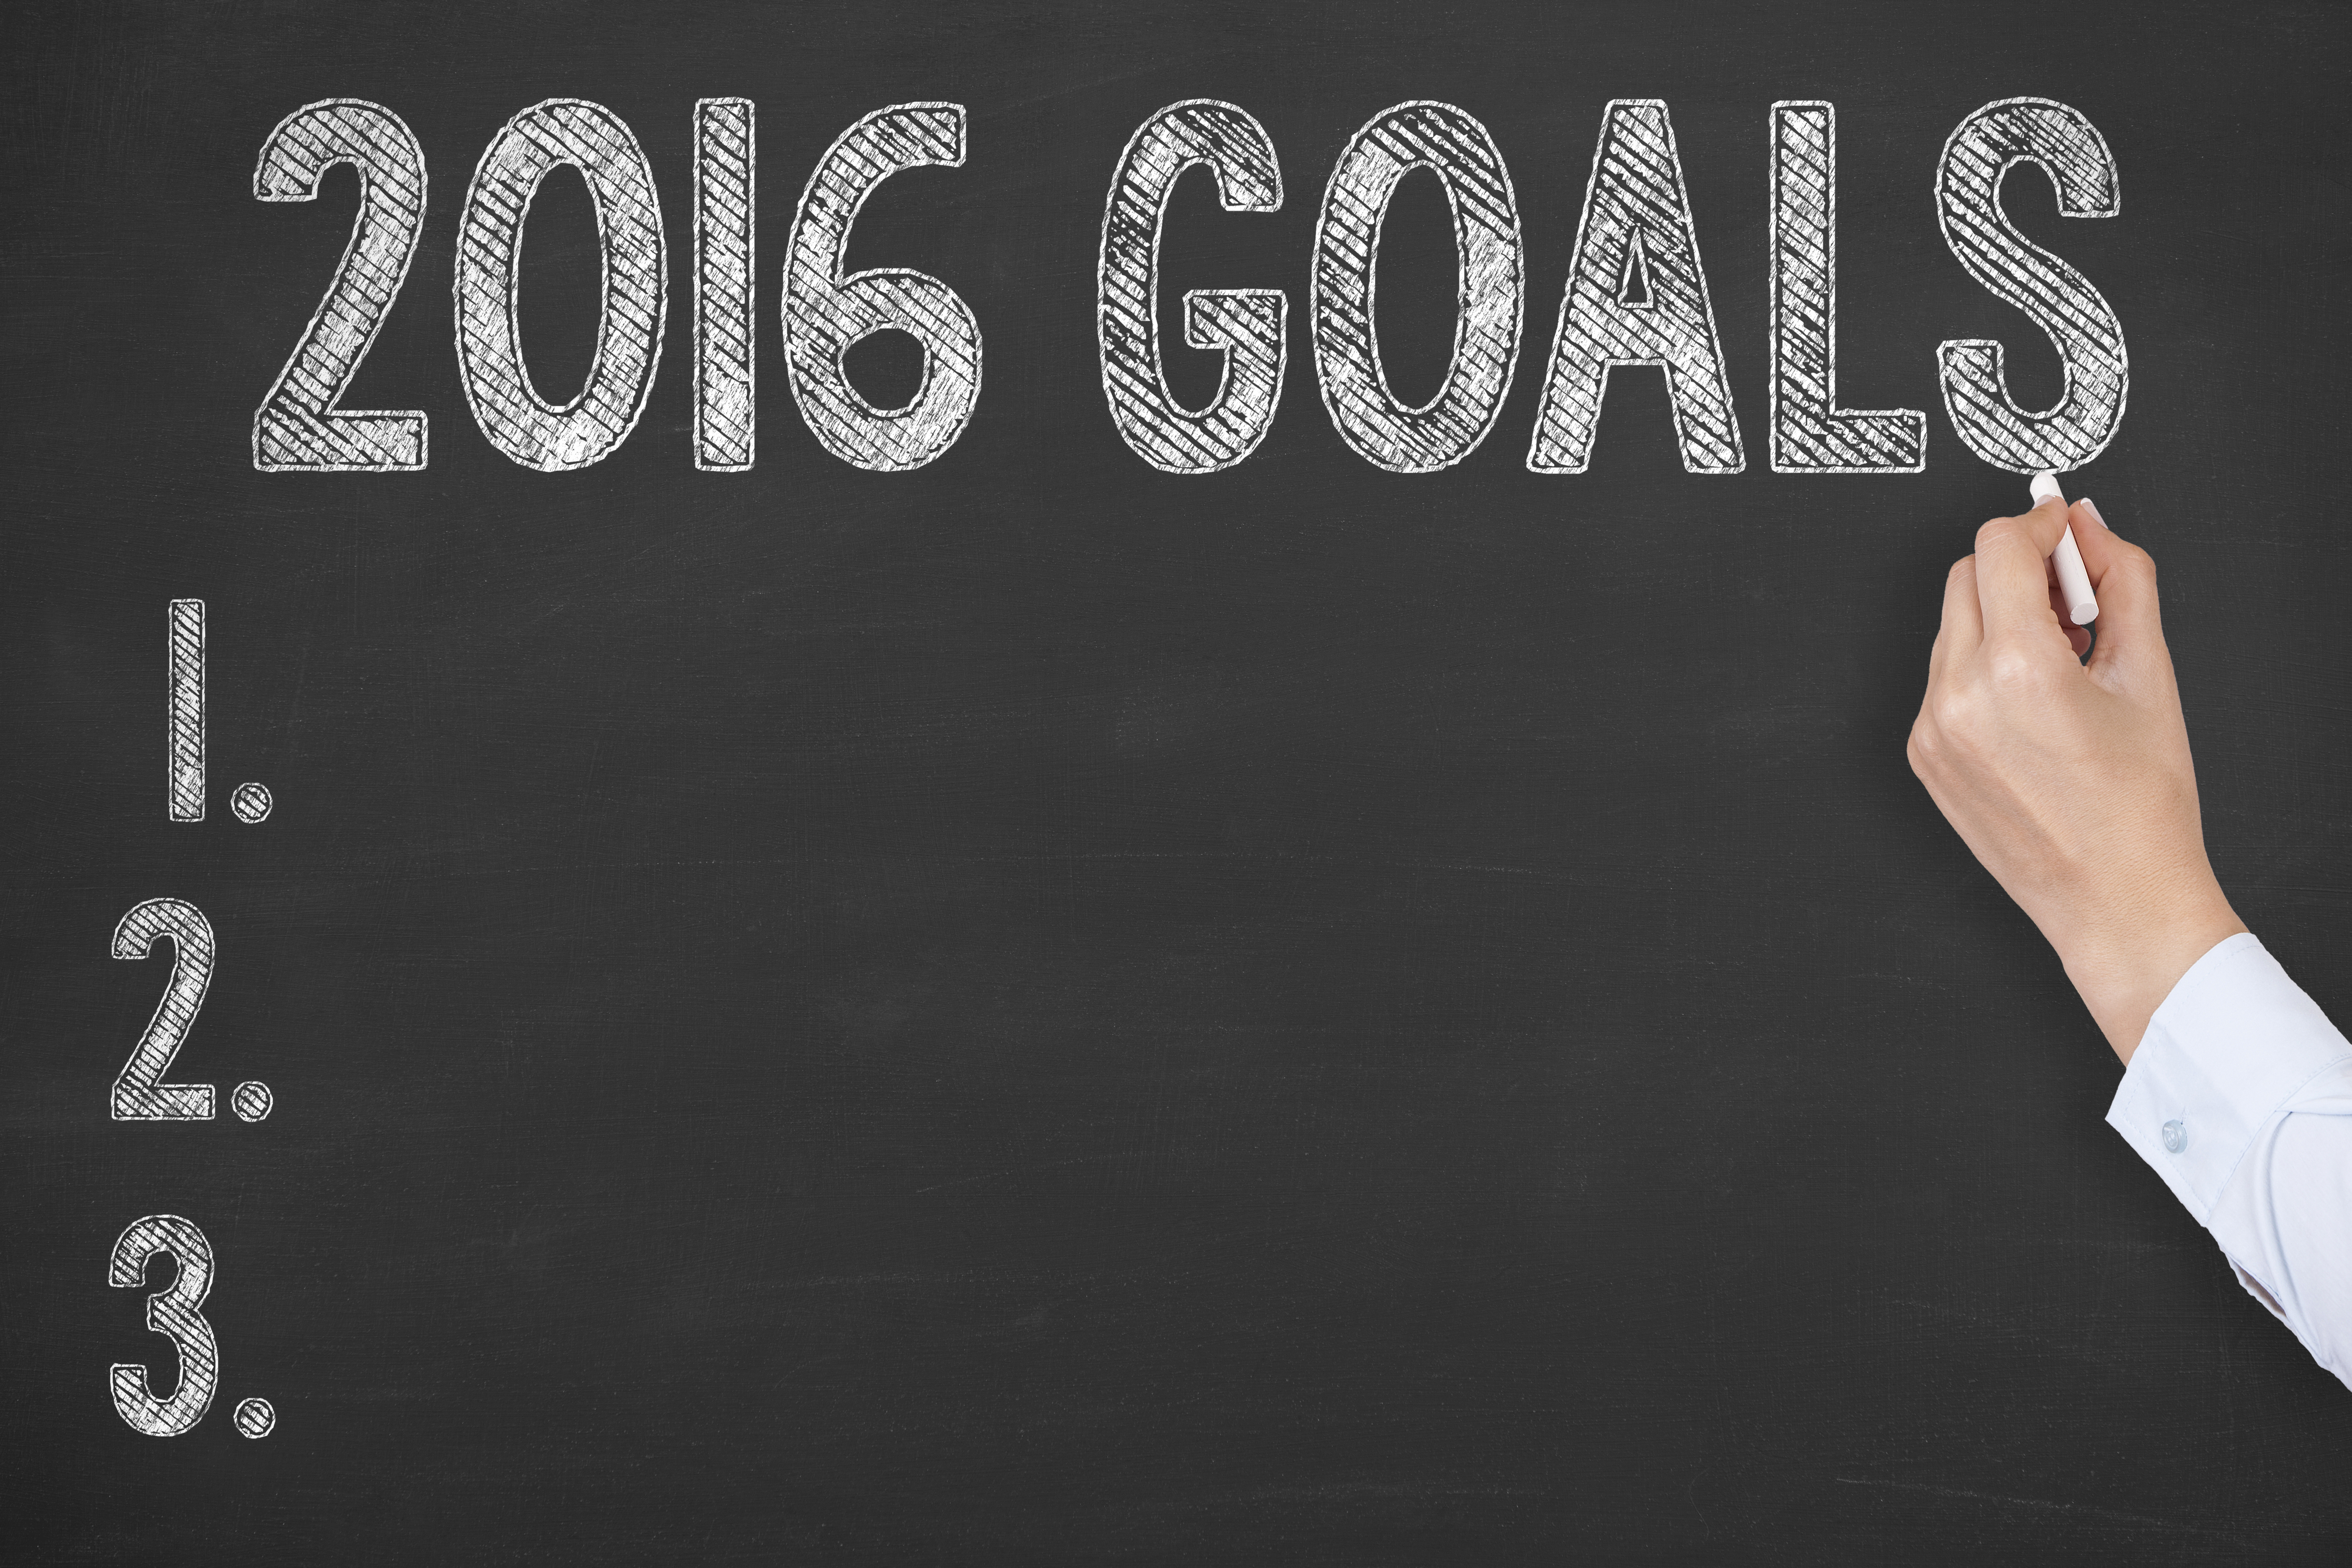 Image of a chalkboard with three personal goals for 2016